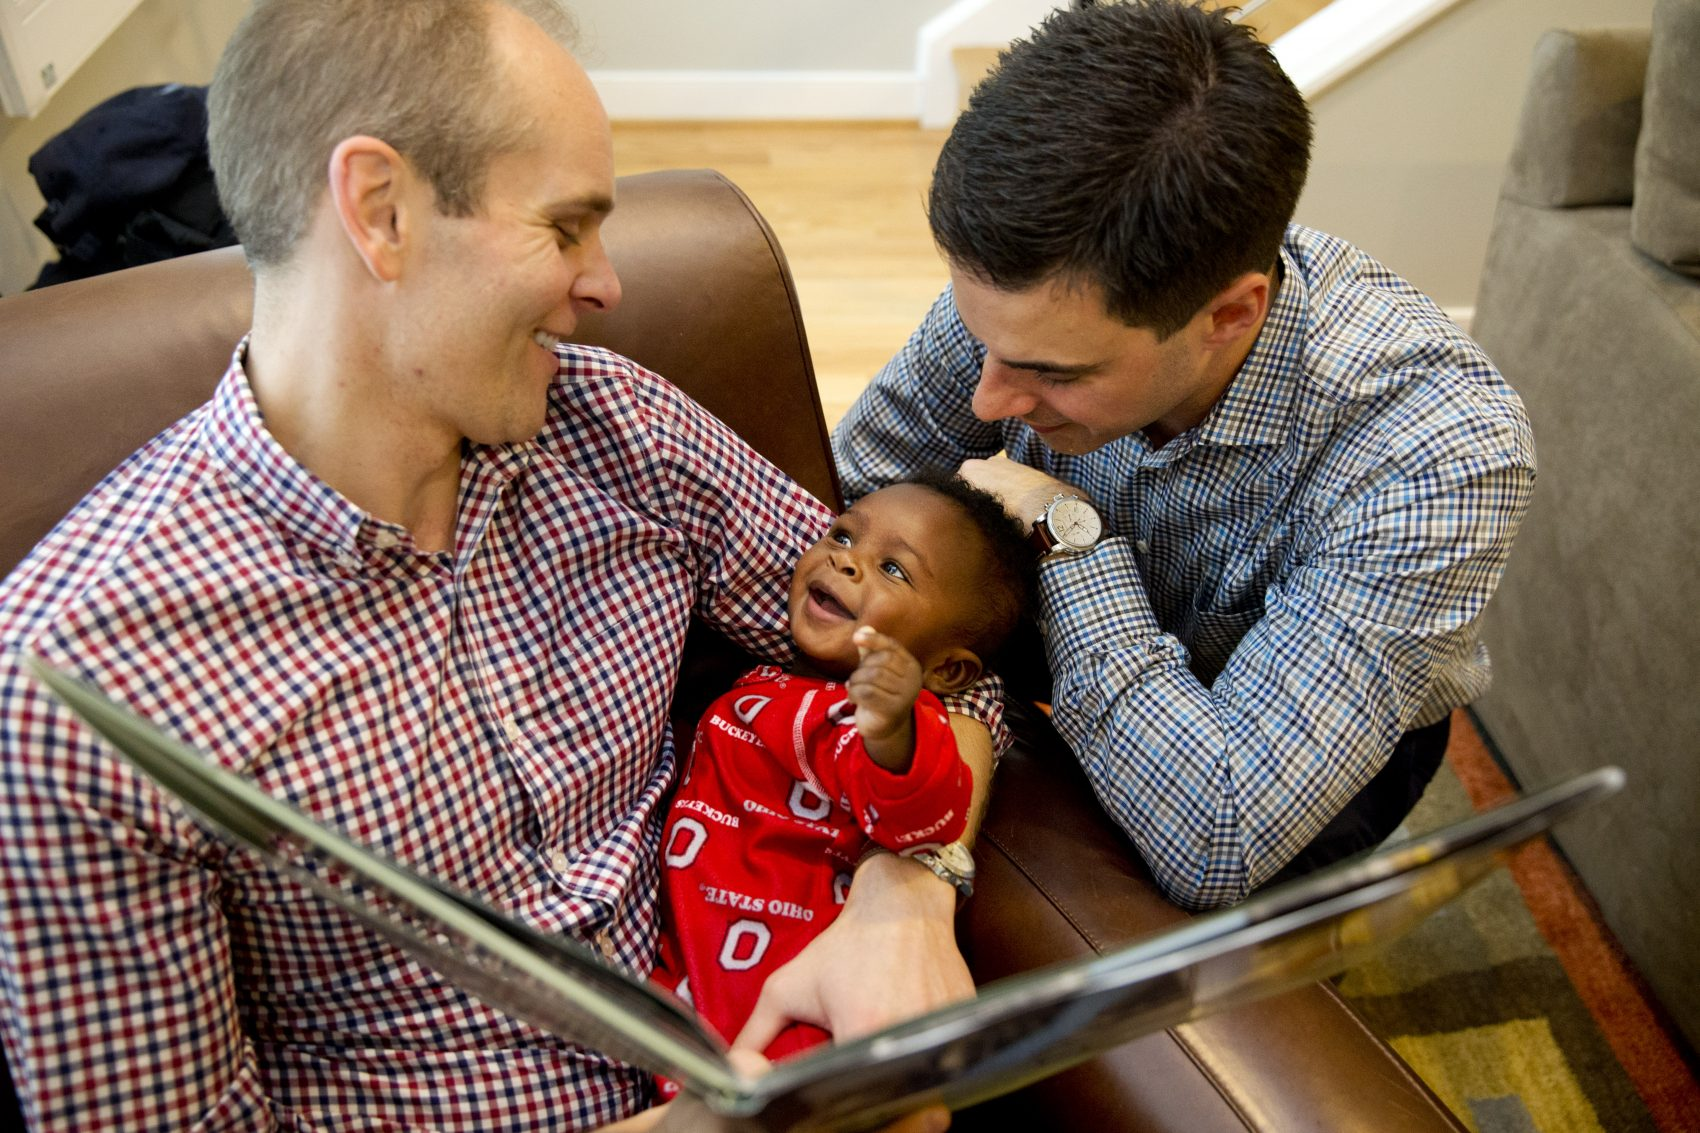 Gregg Pitts, left, and Brooks Brunson read to their son, Thomas Brunson-Pitts, 6 months, before heading to work in the morning at their home in Washington, on May 19, 2016.  (Jacquelyn Martin/AP)